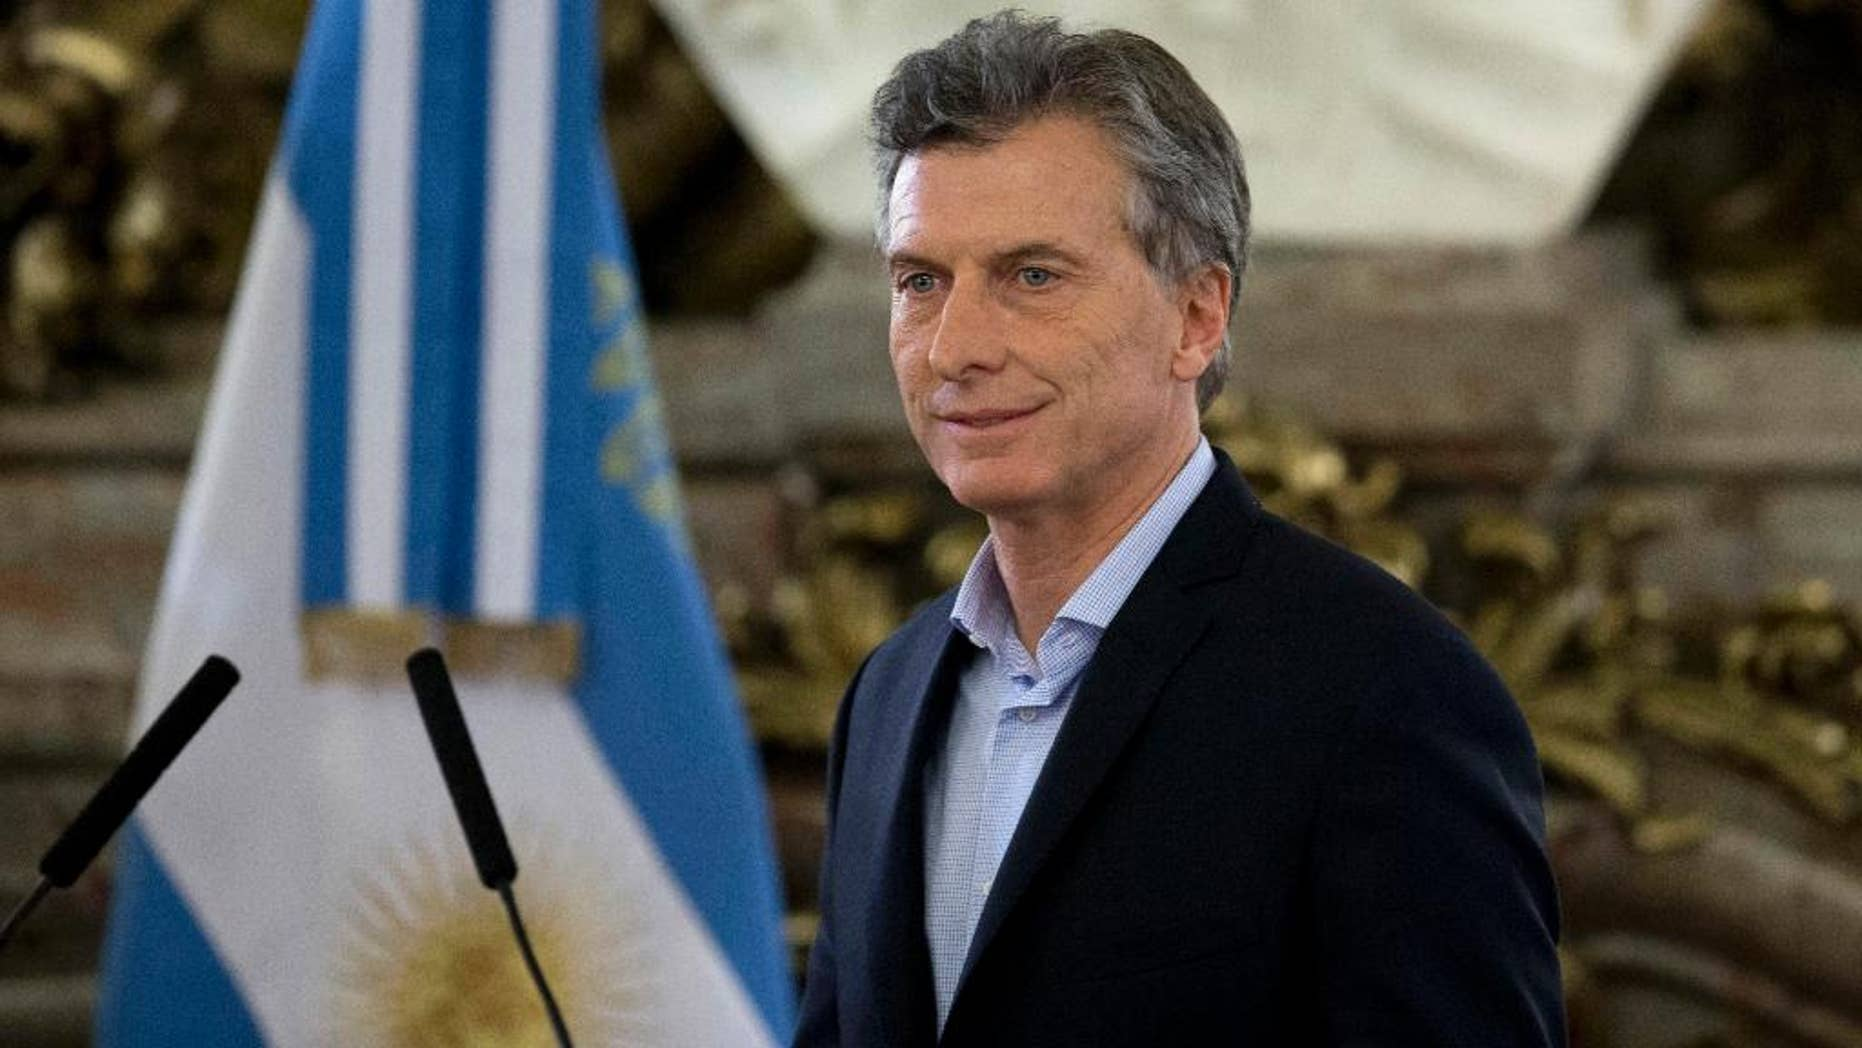 "FILE - In this April 7, 2016 file photo, Argentina's President Mauricio Macri arrives at government house in Buenos Aires, Argentina. The presidency said in a statement Friday, June 3, 2016, that Macri suffered from a ""light arrhythmia"" at around 3 p.m. local time. But he carried on working normally at the presidential residence in the outskirts of Buenos Aires. The 57-year-old Macri was later checked into a hospital for precautionary studies.  (AP Photo/Natacha Pisarenko, File)"